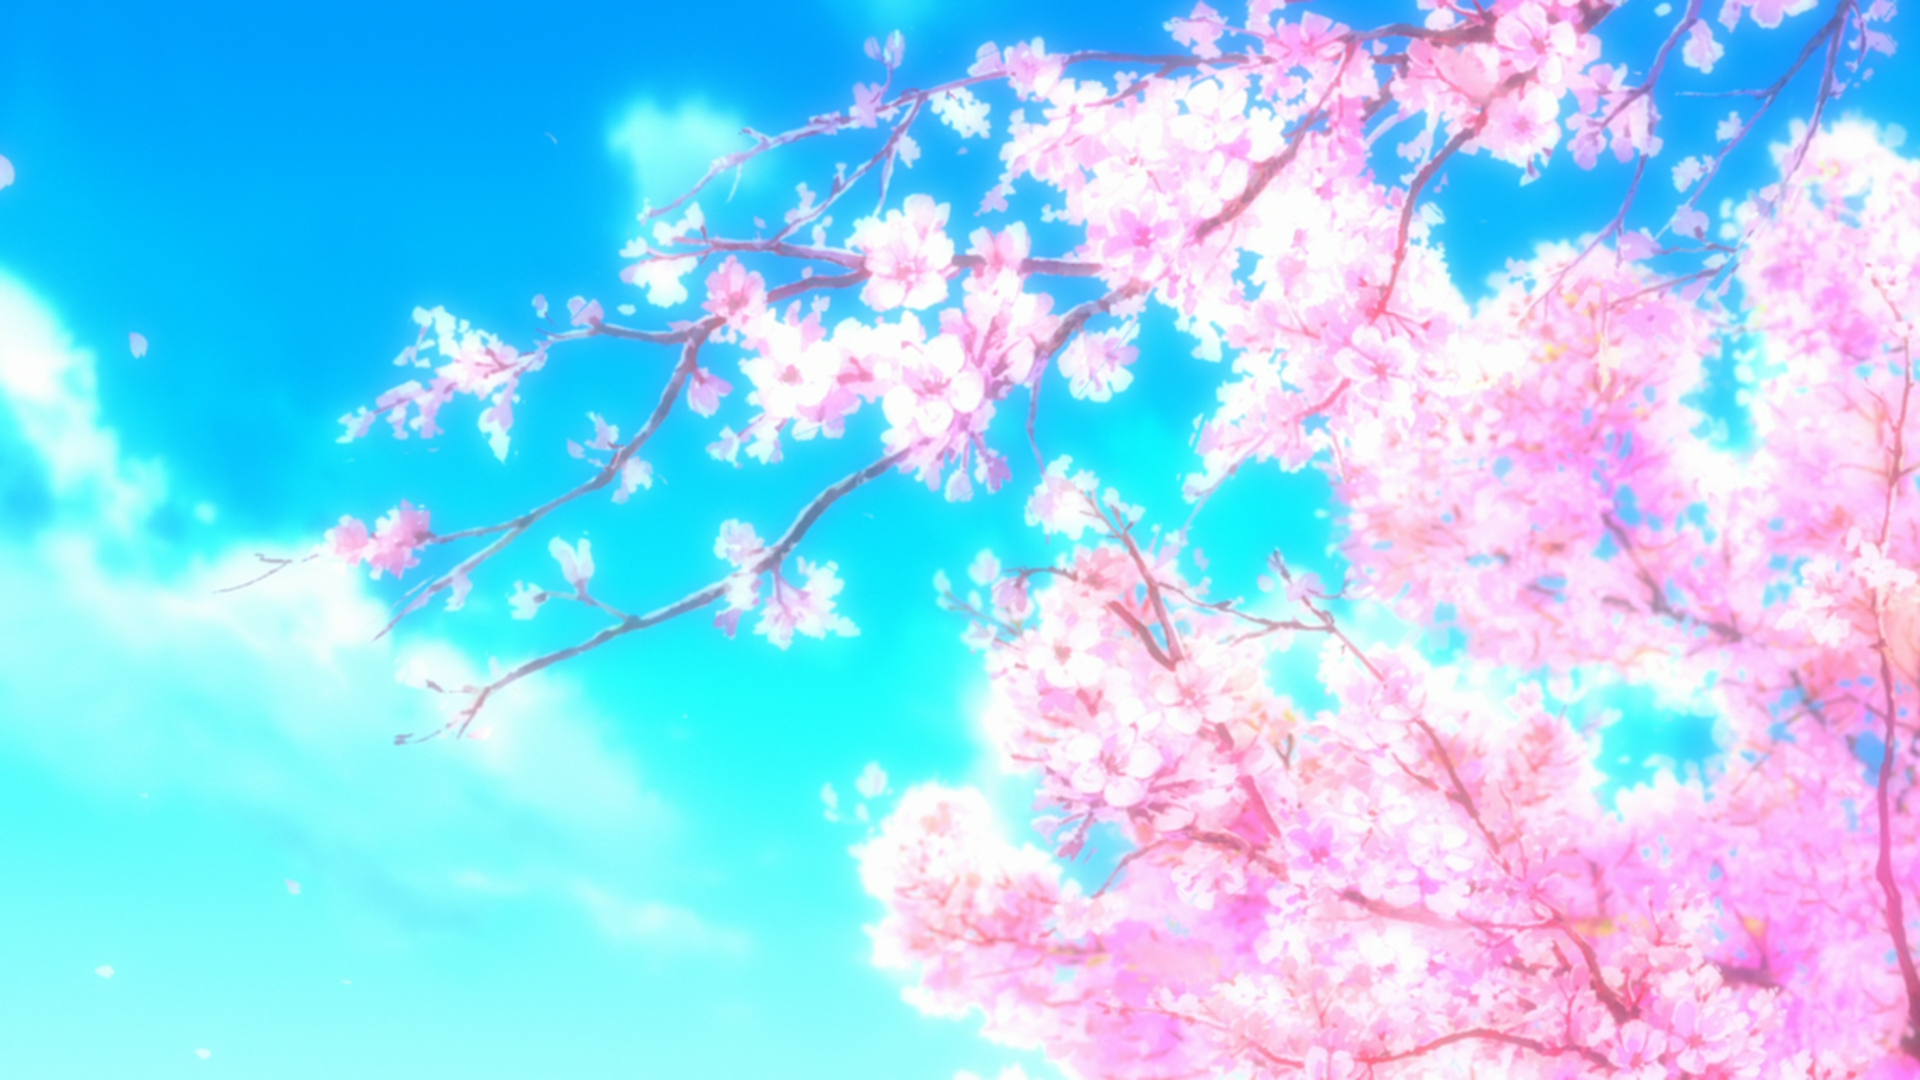 more discrete anime wallpapers album on imgur cool anime backgrounds png 1920 1080